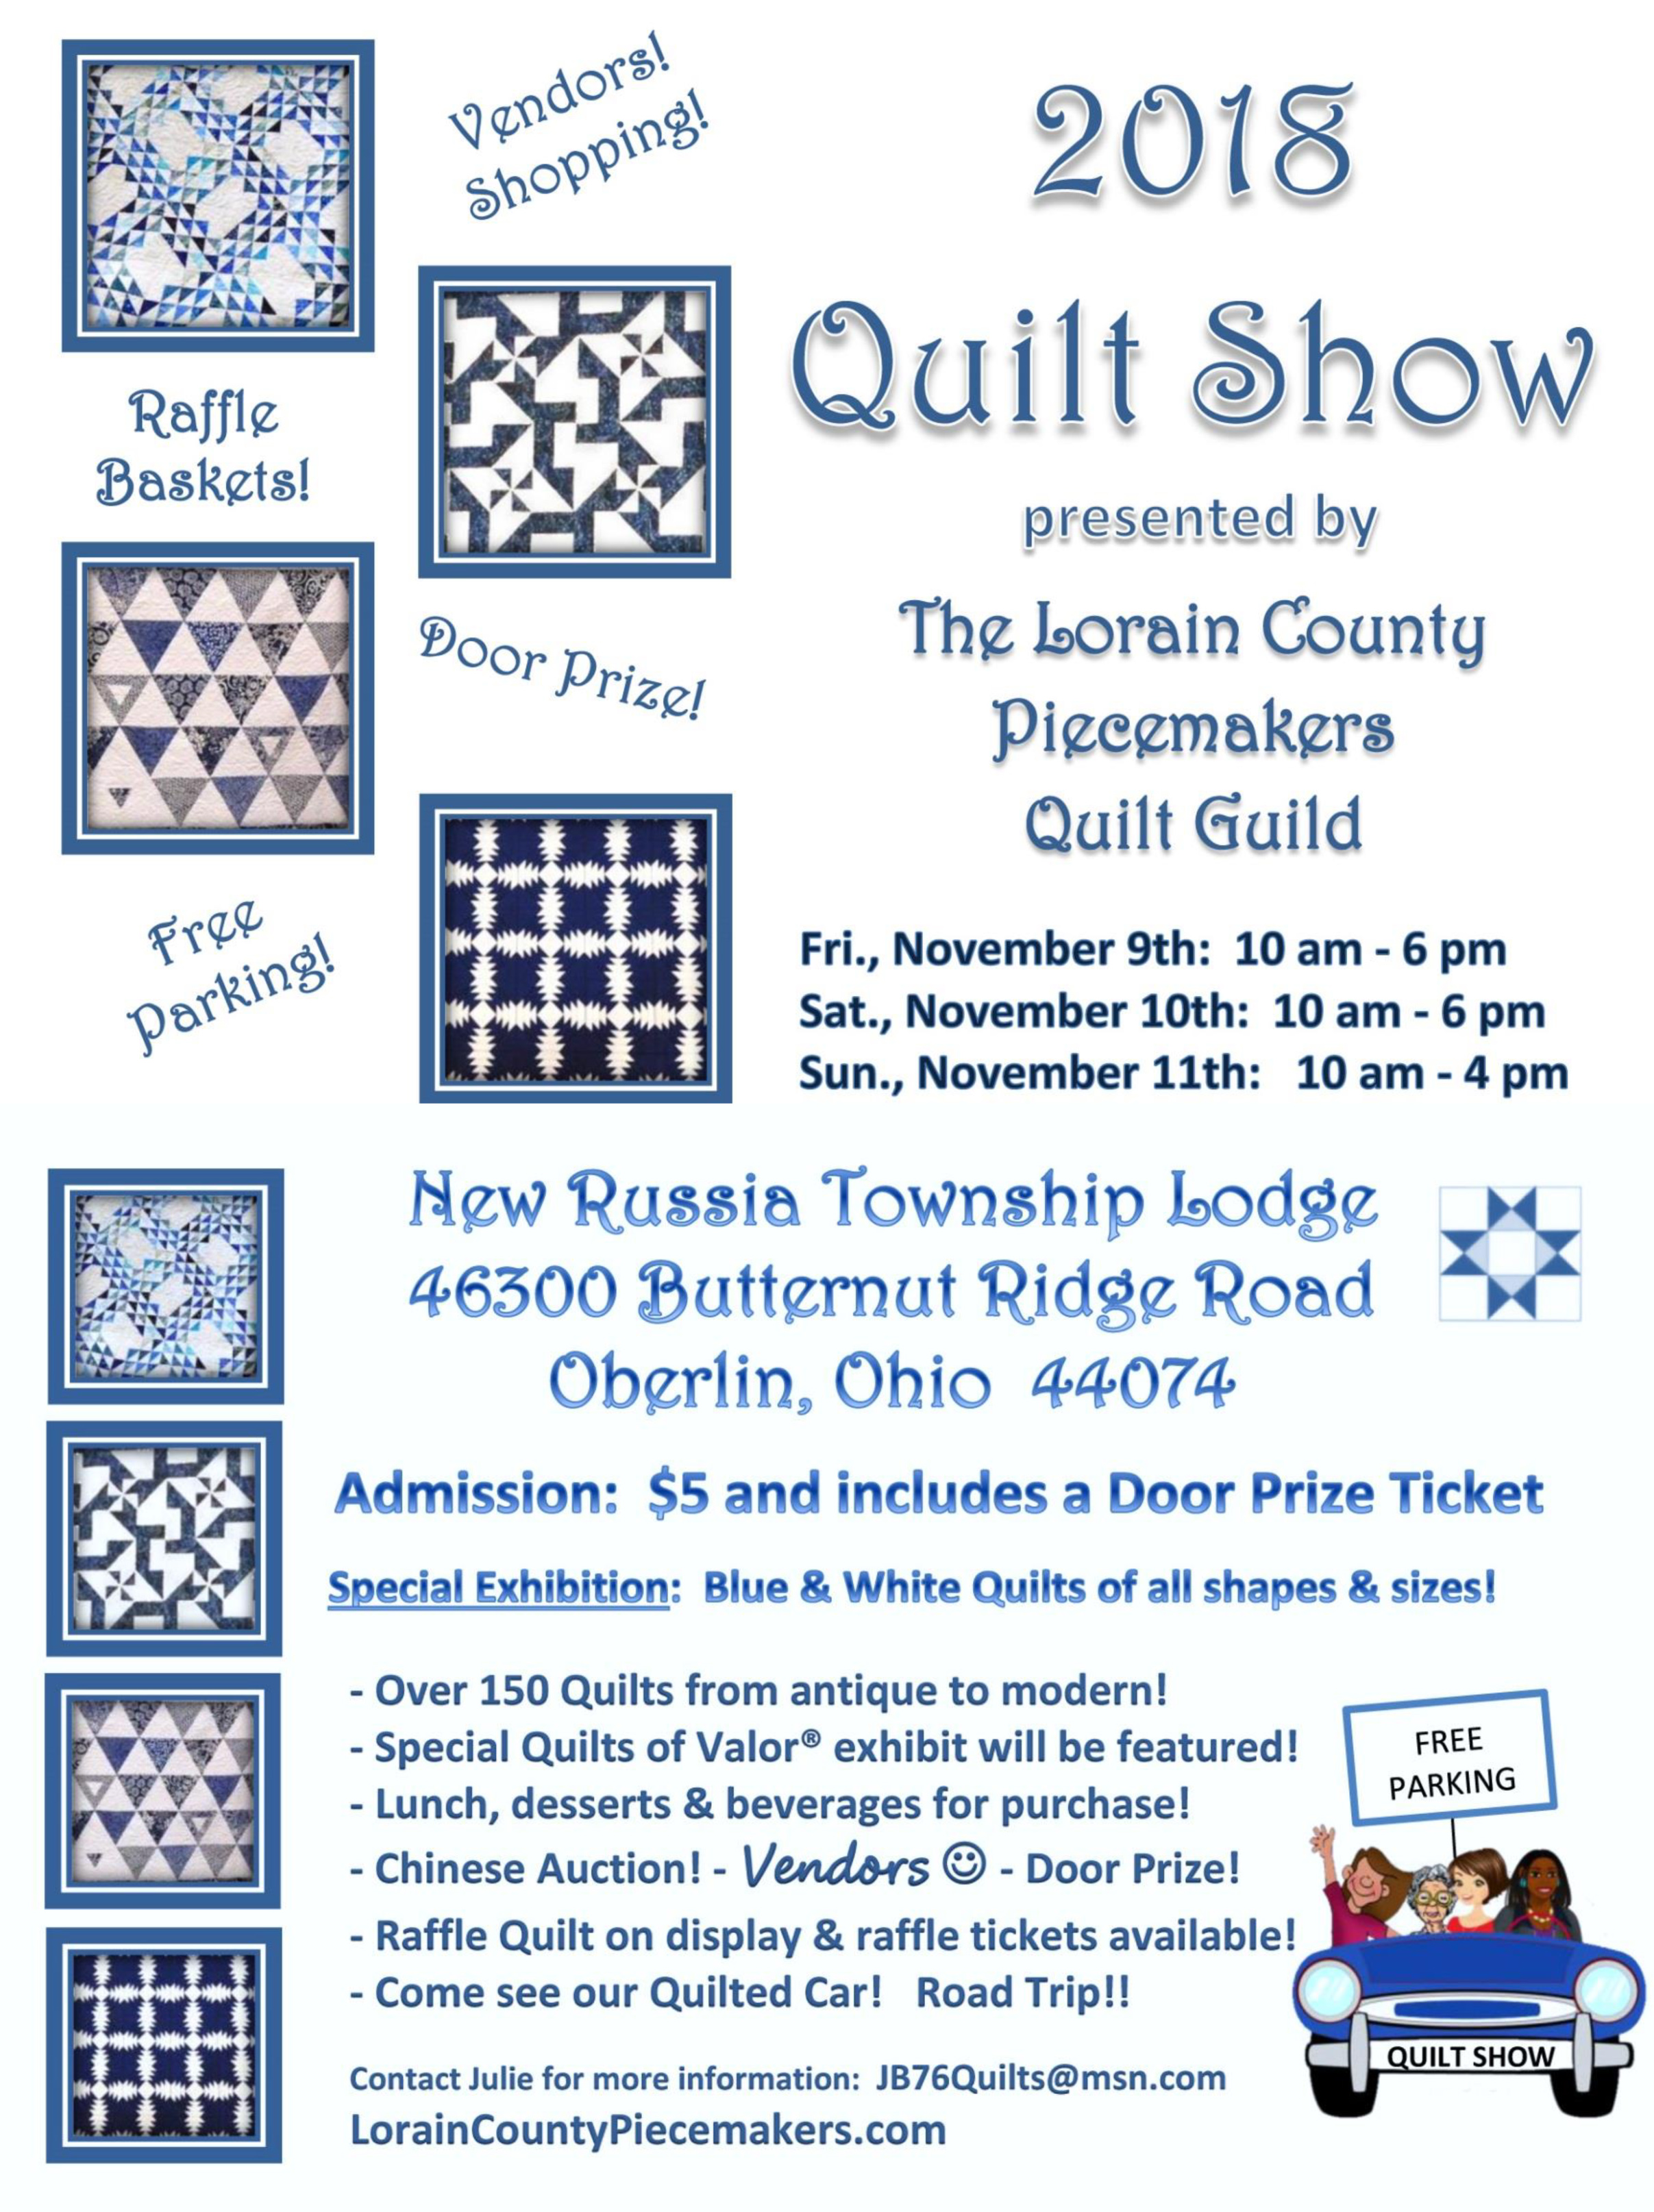 2018 Quilt Show Lorain County Piecemakers Guild